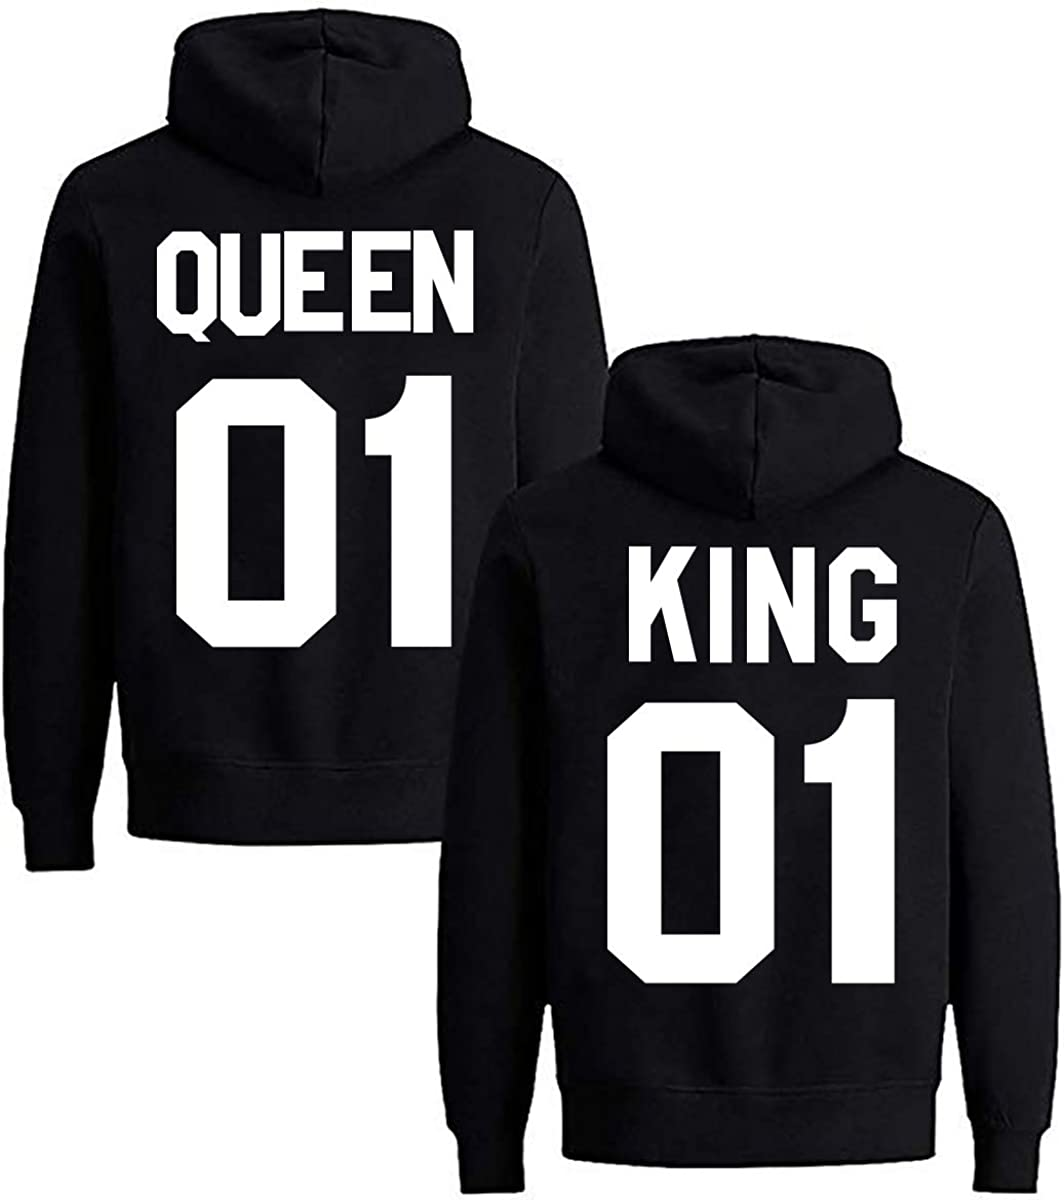 Yooh Design King /& Queen Matching Couple Hoodie His /& Hers Hoodies-1 Pcs